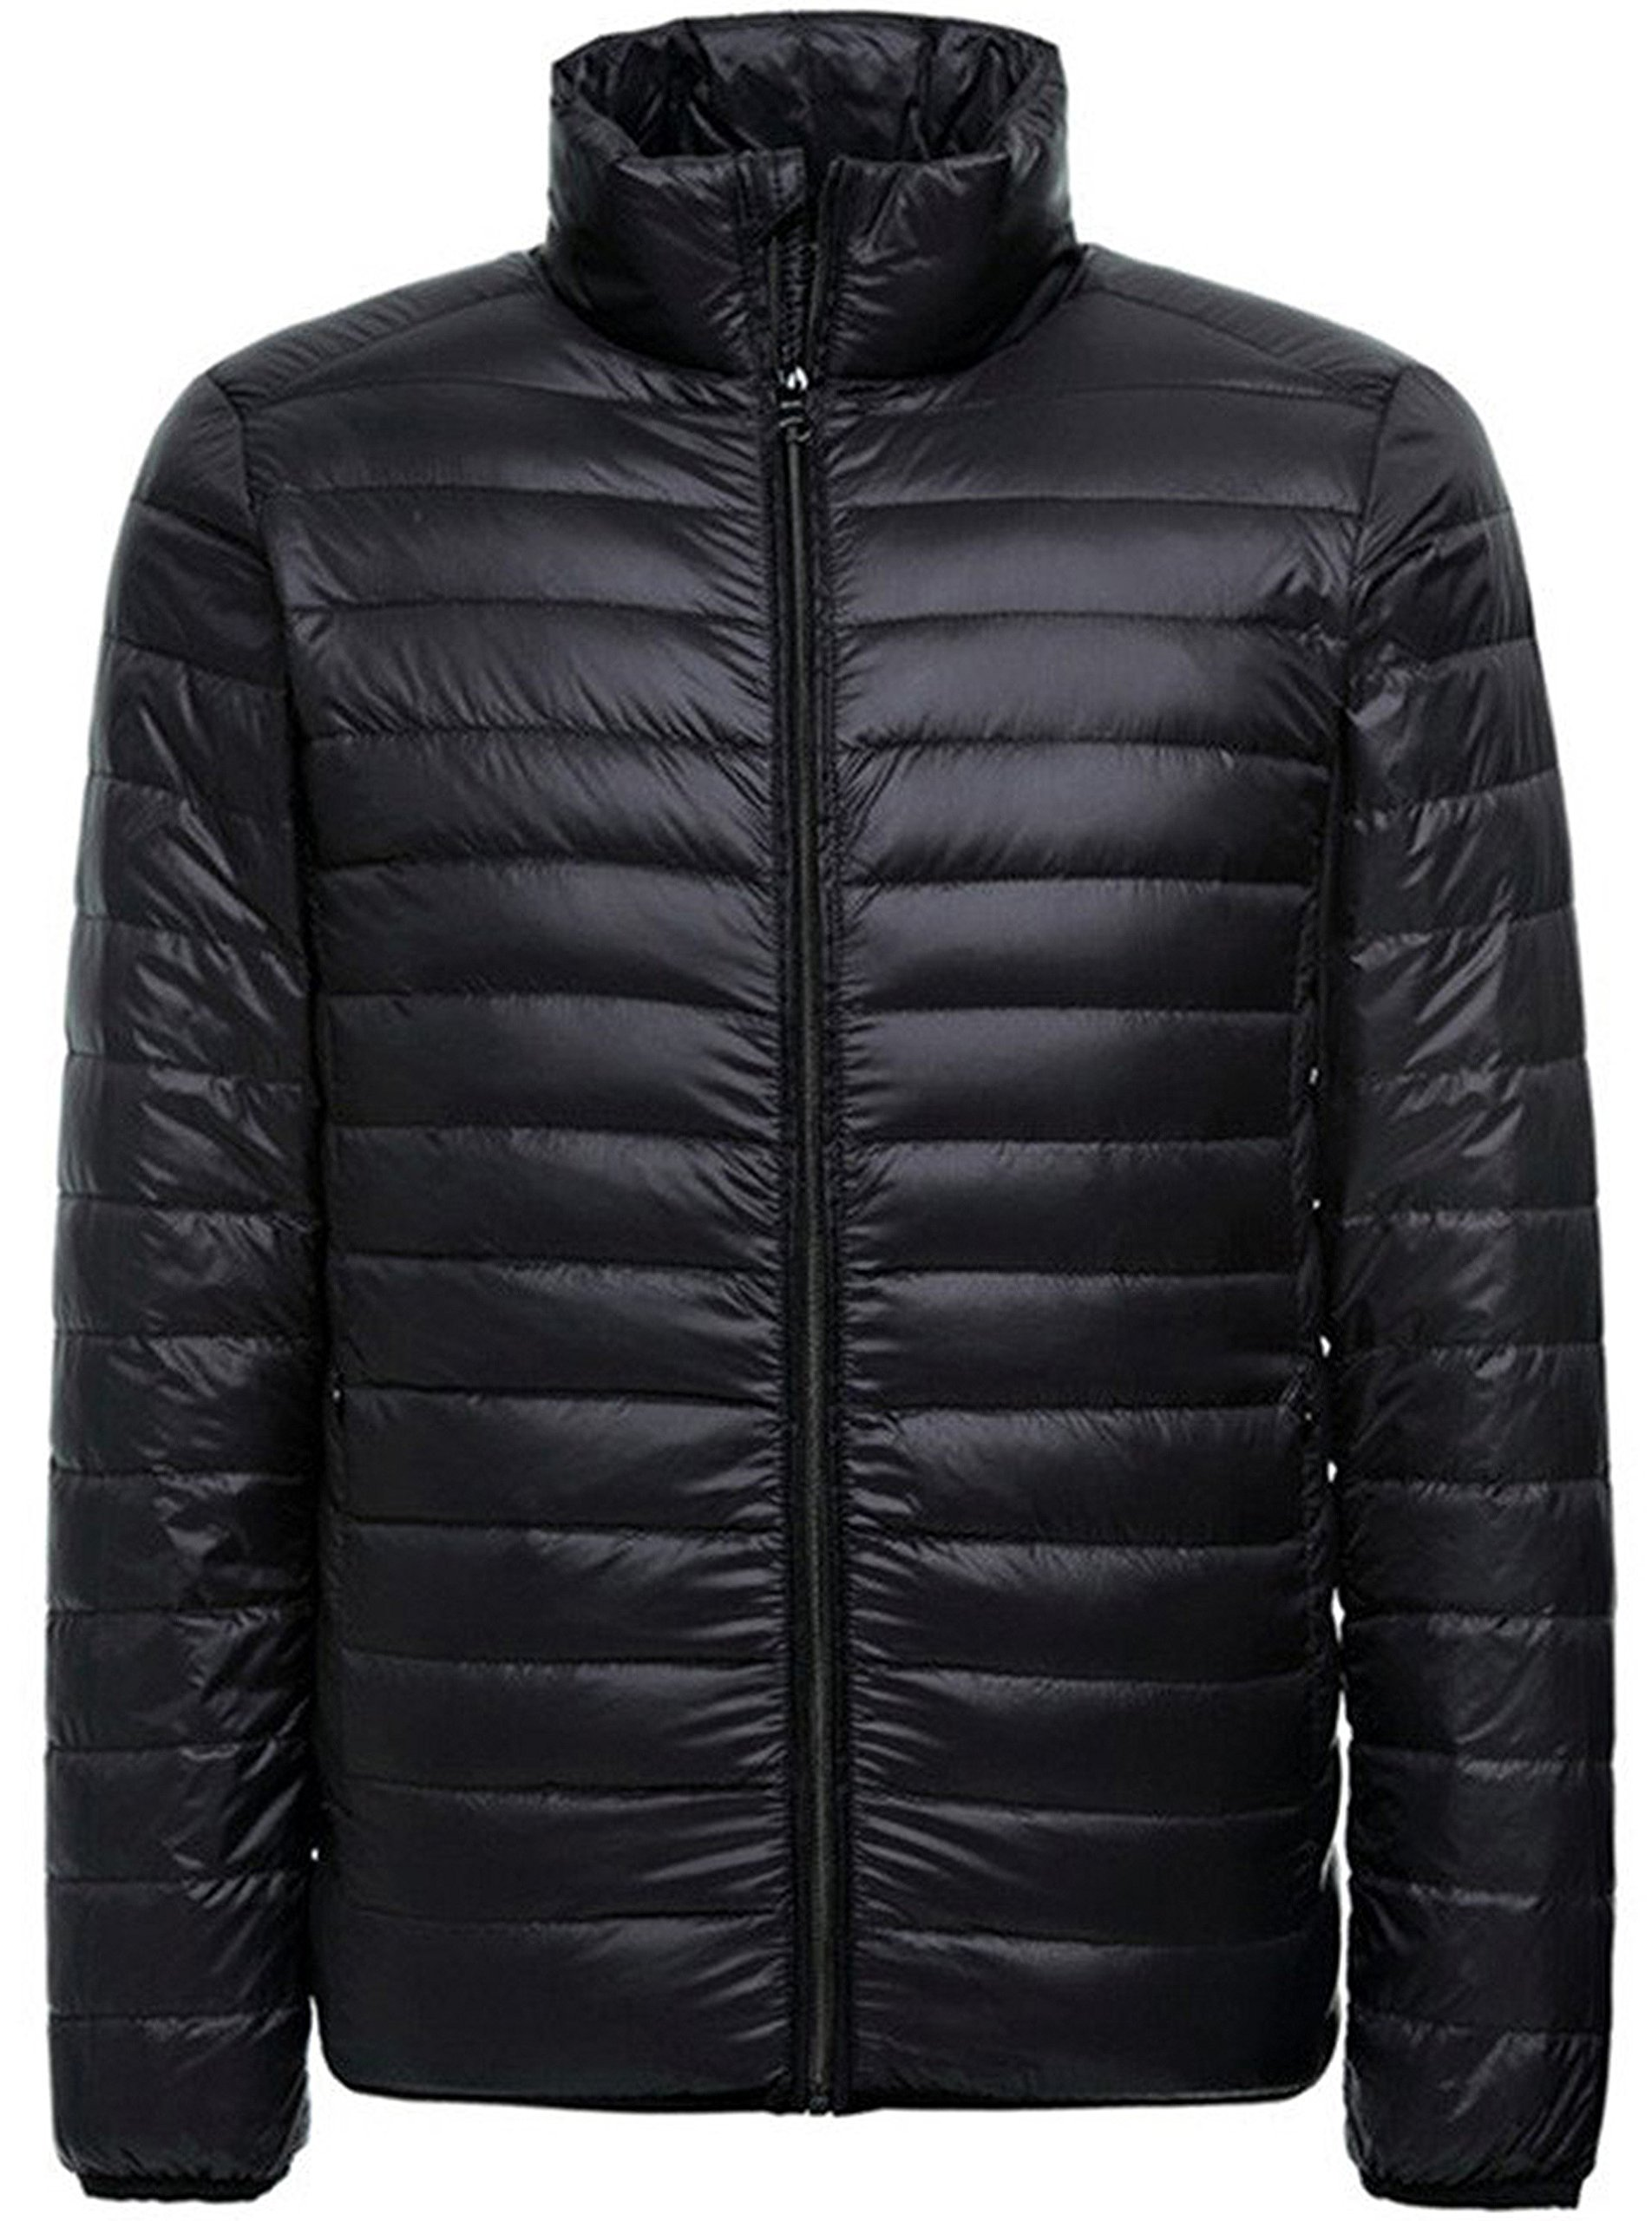 Men's Packable Hooded Down-Fill Quilted Jacket Light Waterproof Coats Black Without Hooded US Medium/Tag XX-Large